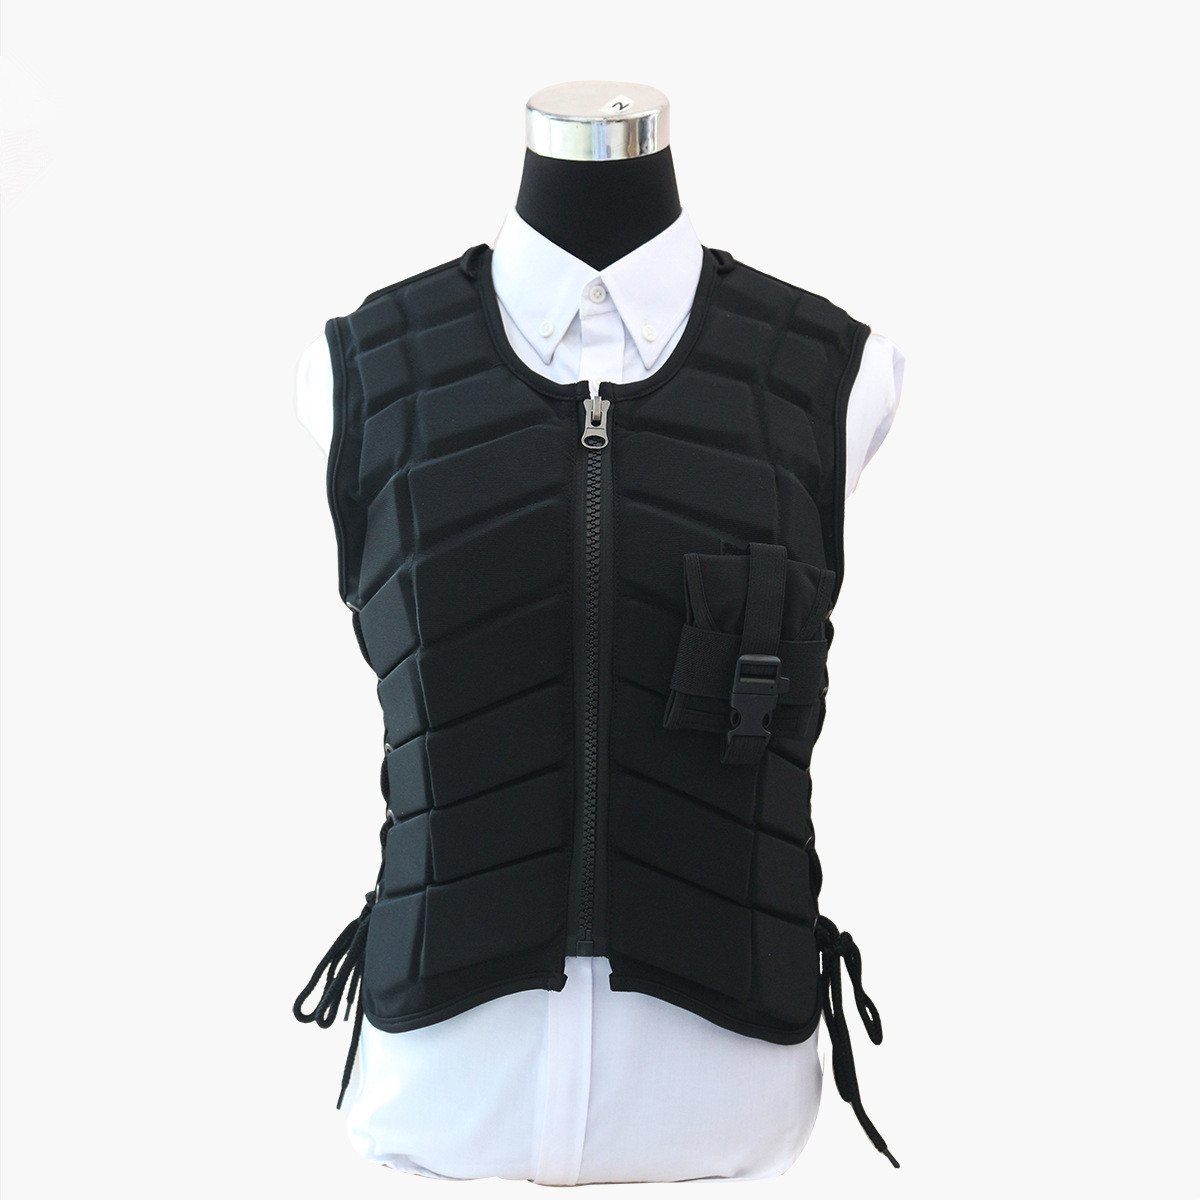 Equestrian Armor Vest Horse-Riding Clothing Protective Clothing Children Knight Equipment Equestrian Unisex  EVA  Padded  Vest 2